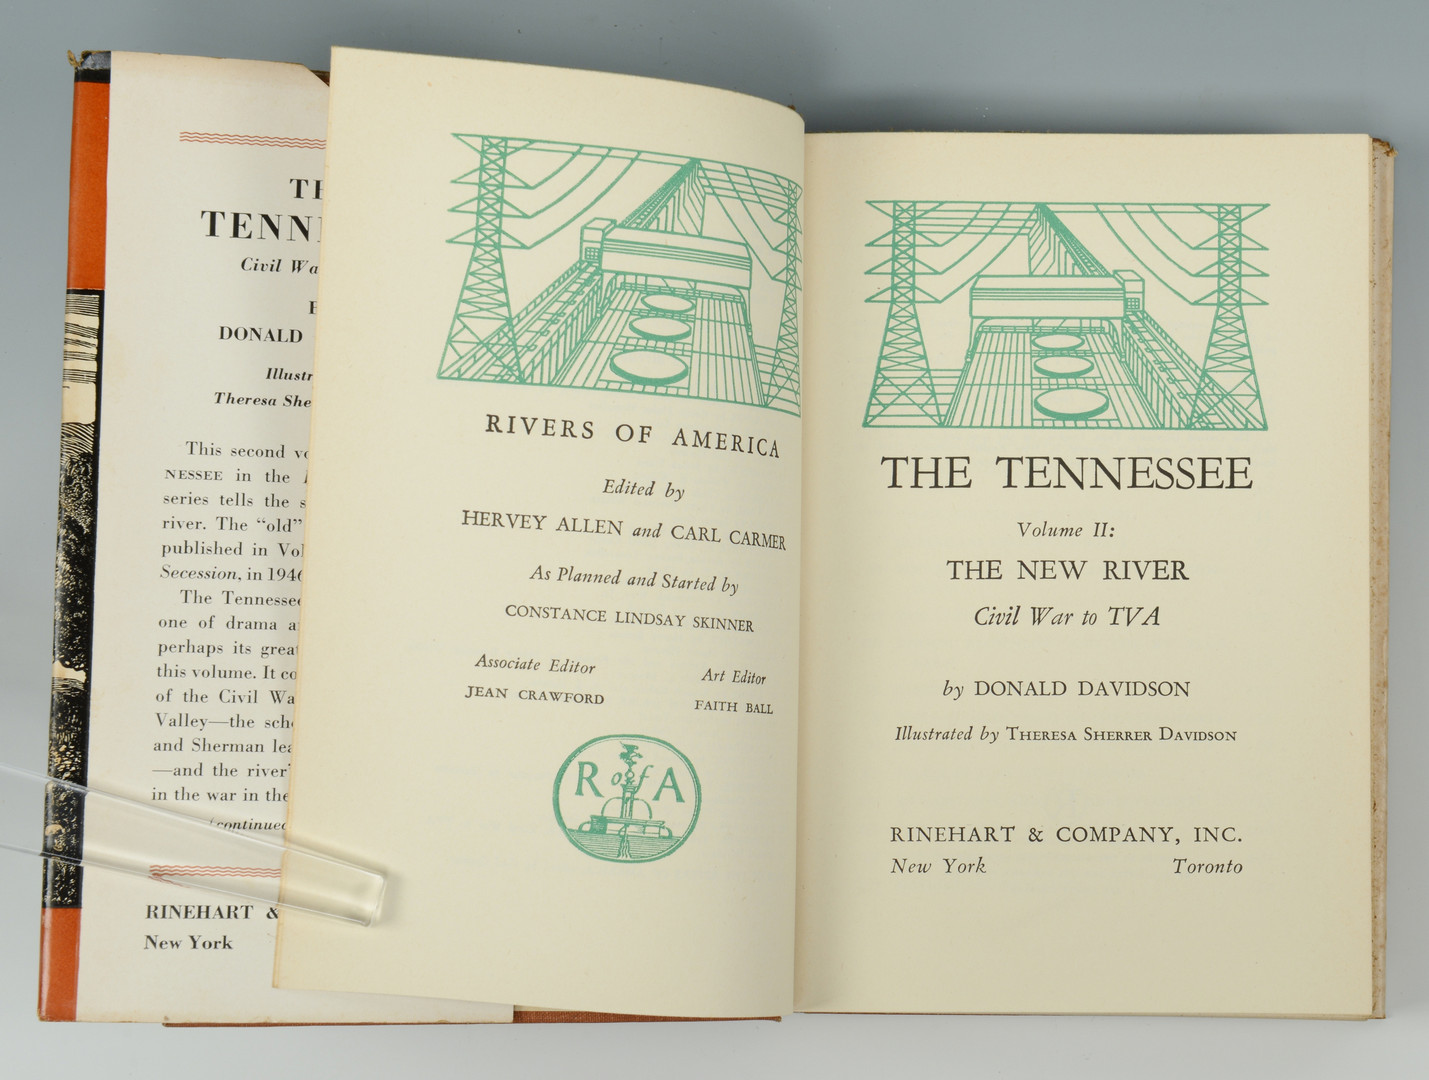 Lot 871: Grouping of three (3) Books, 1st ed